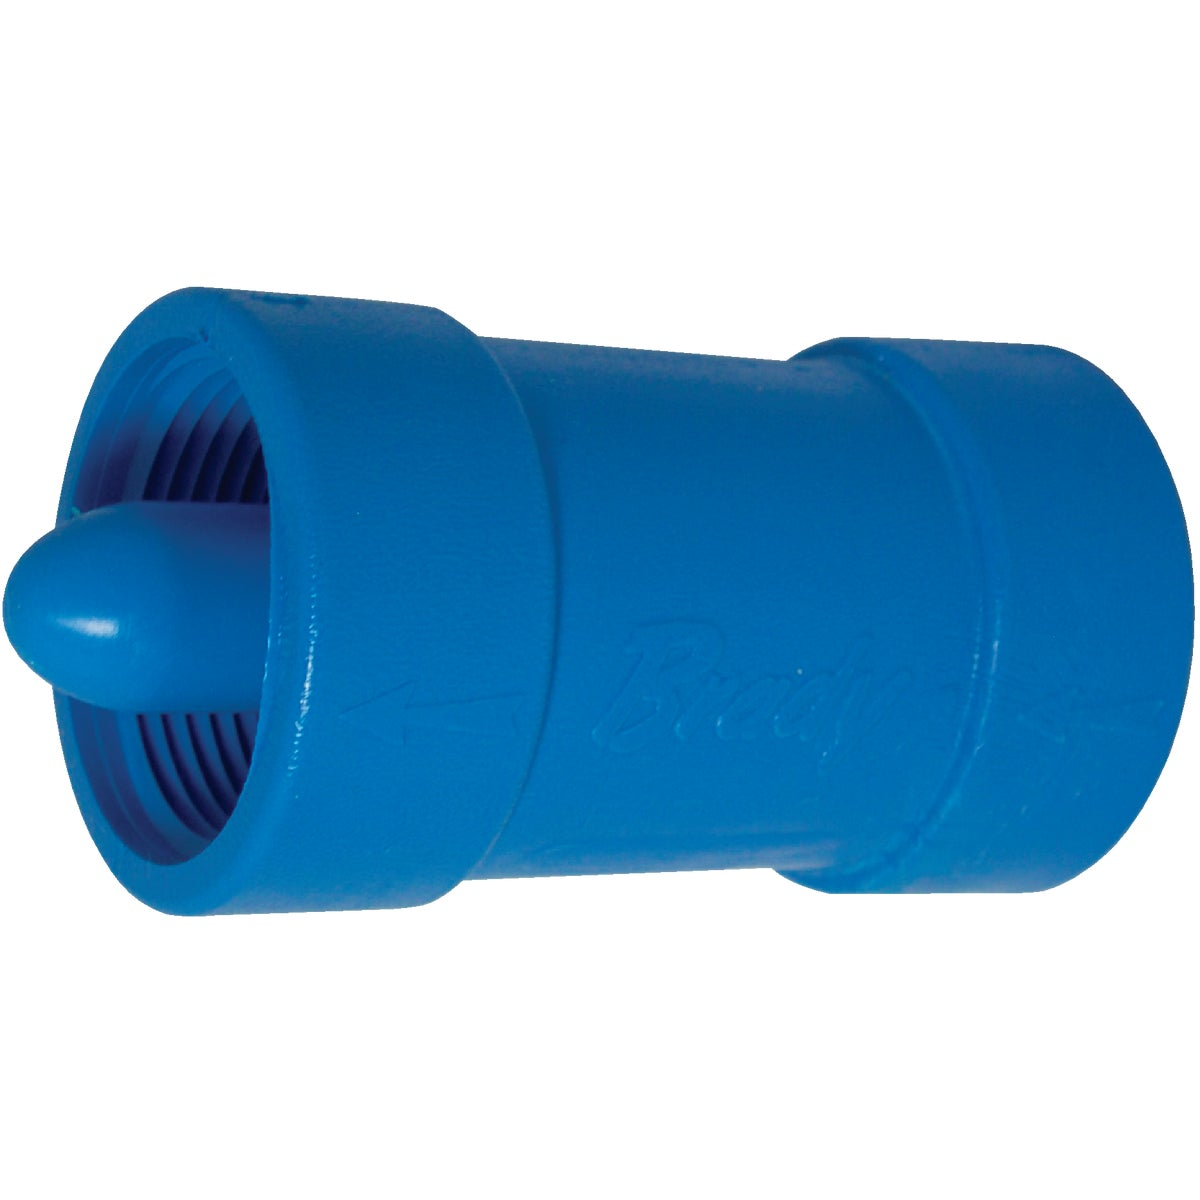 SPR LOADED CHECK VALVE